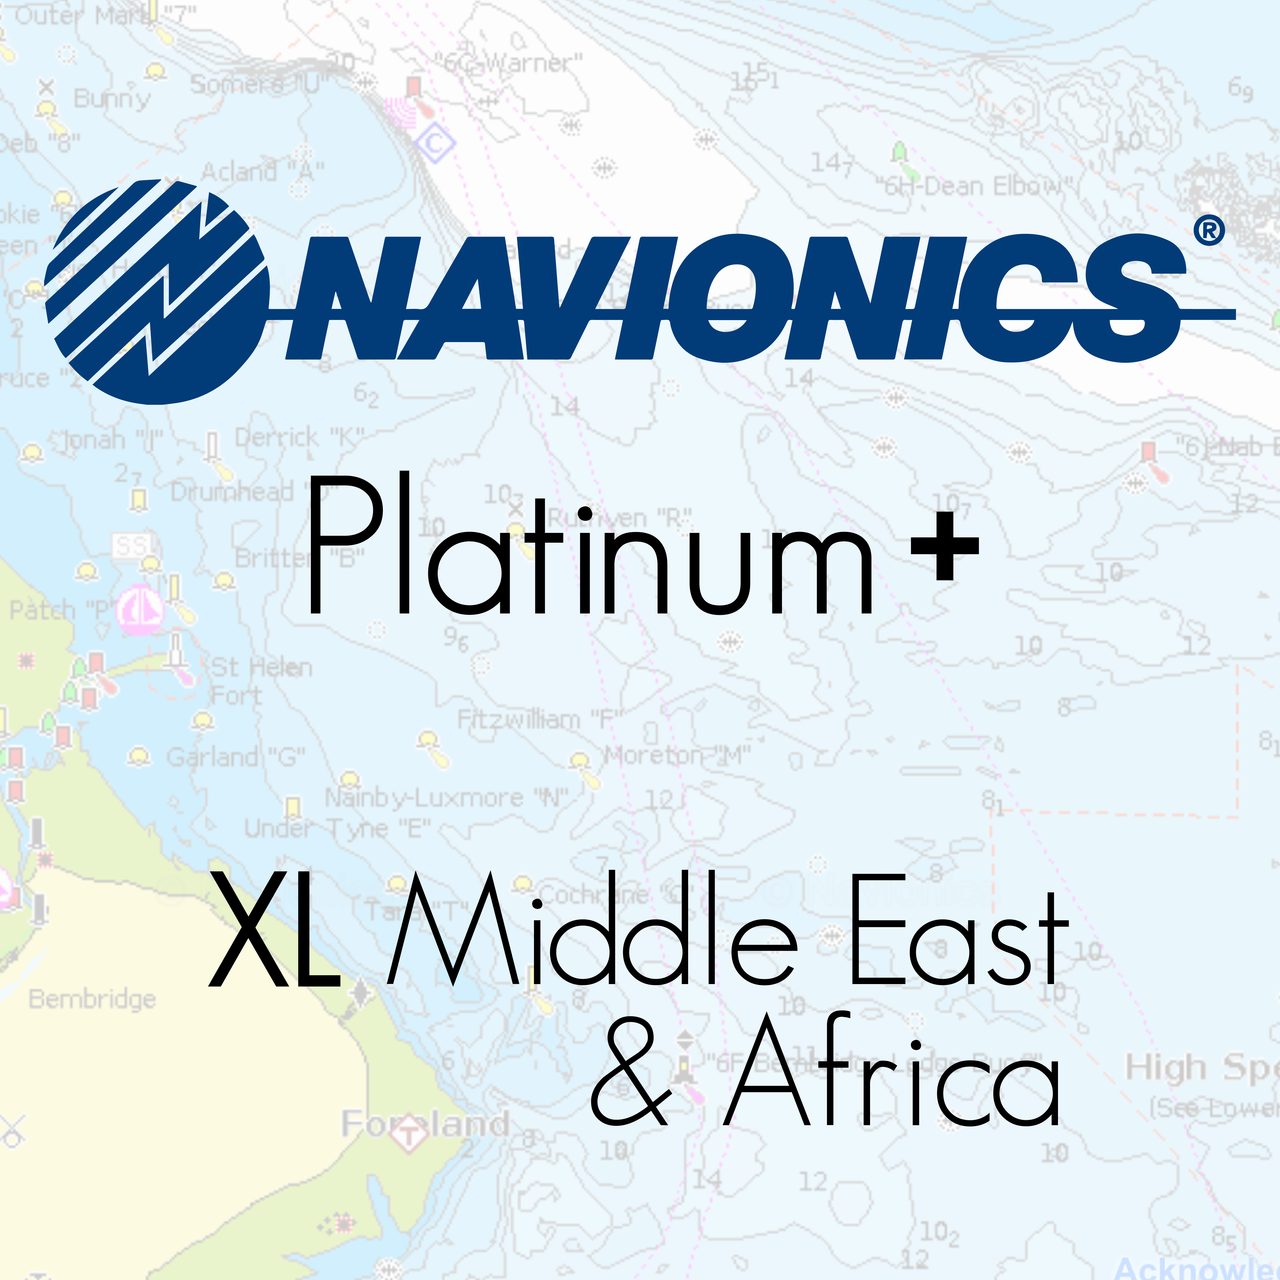 Navionics Platinum Plus XL Middle East & Africa Marine Charts